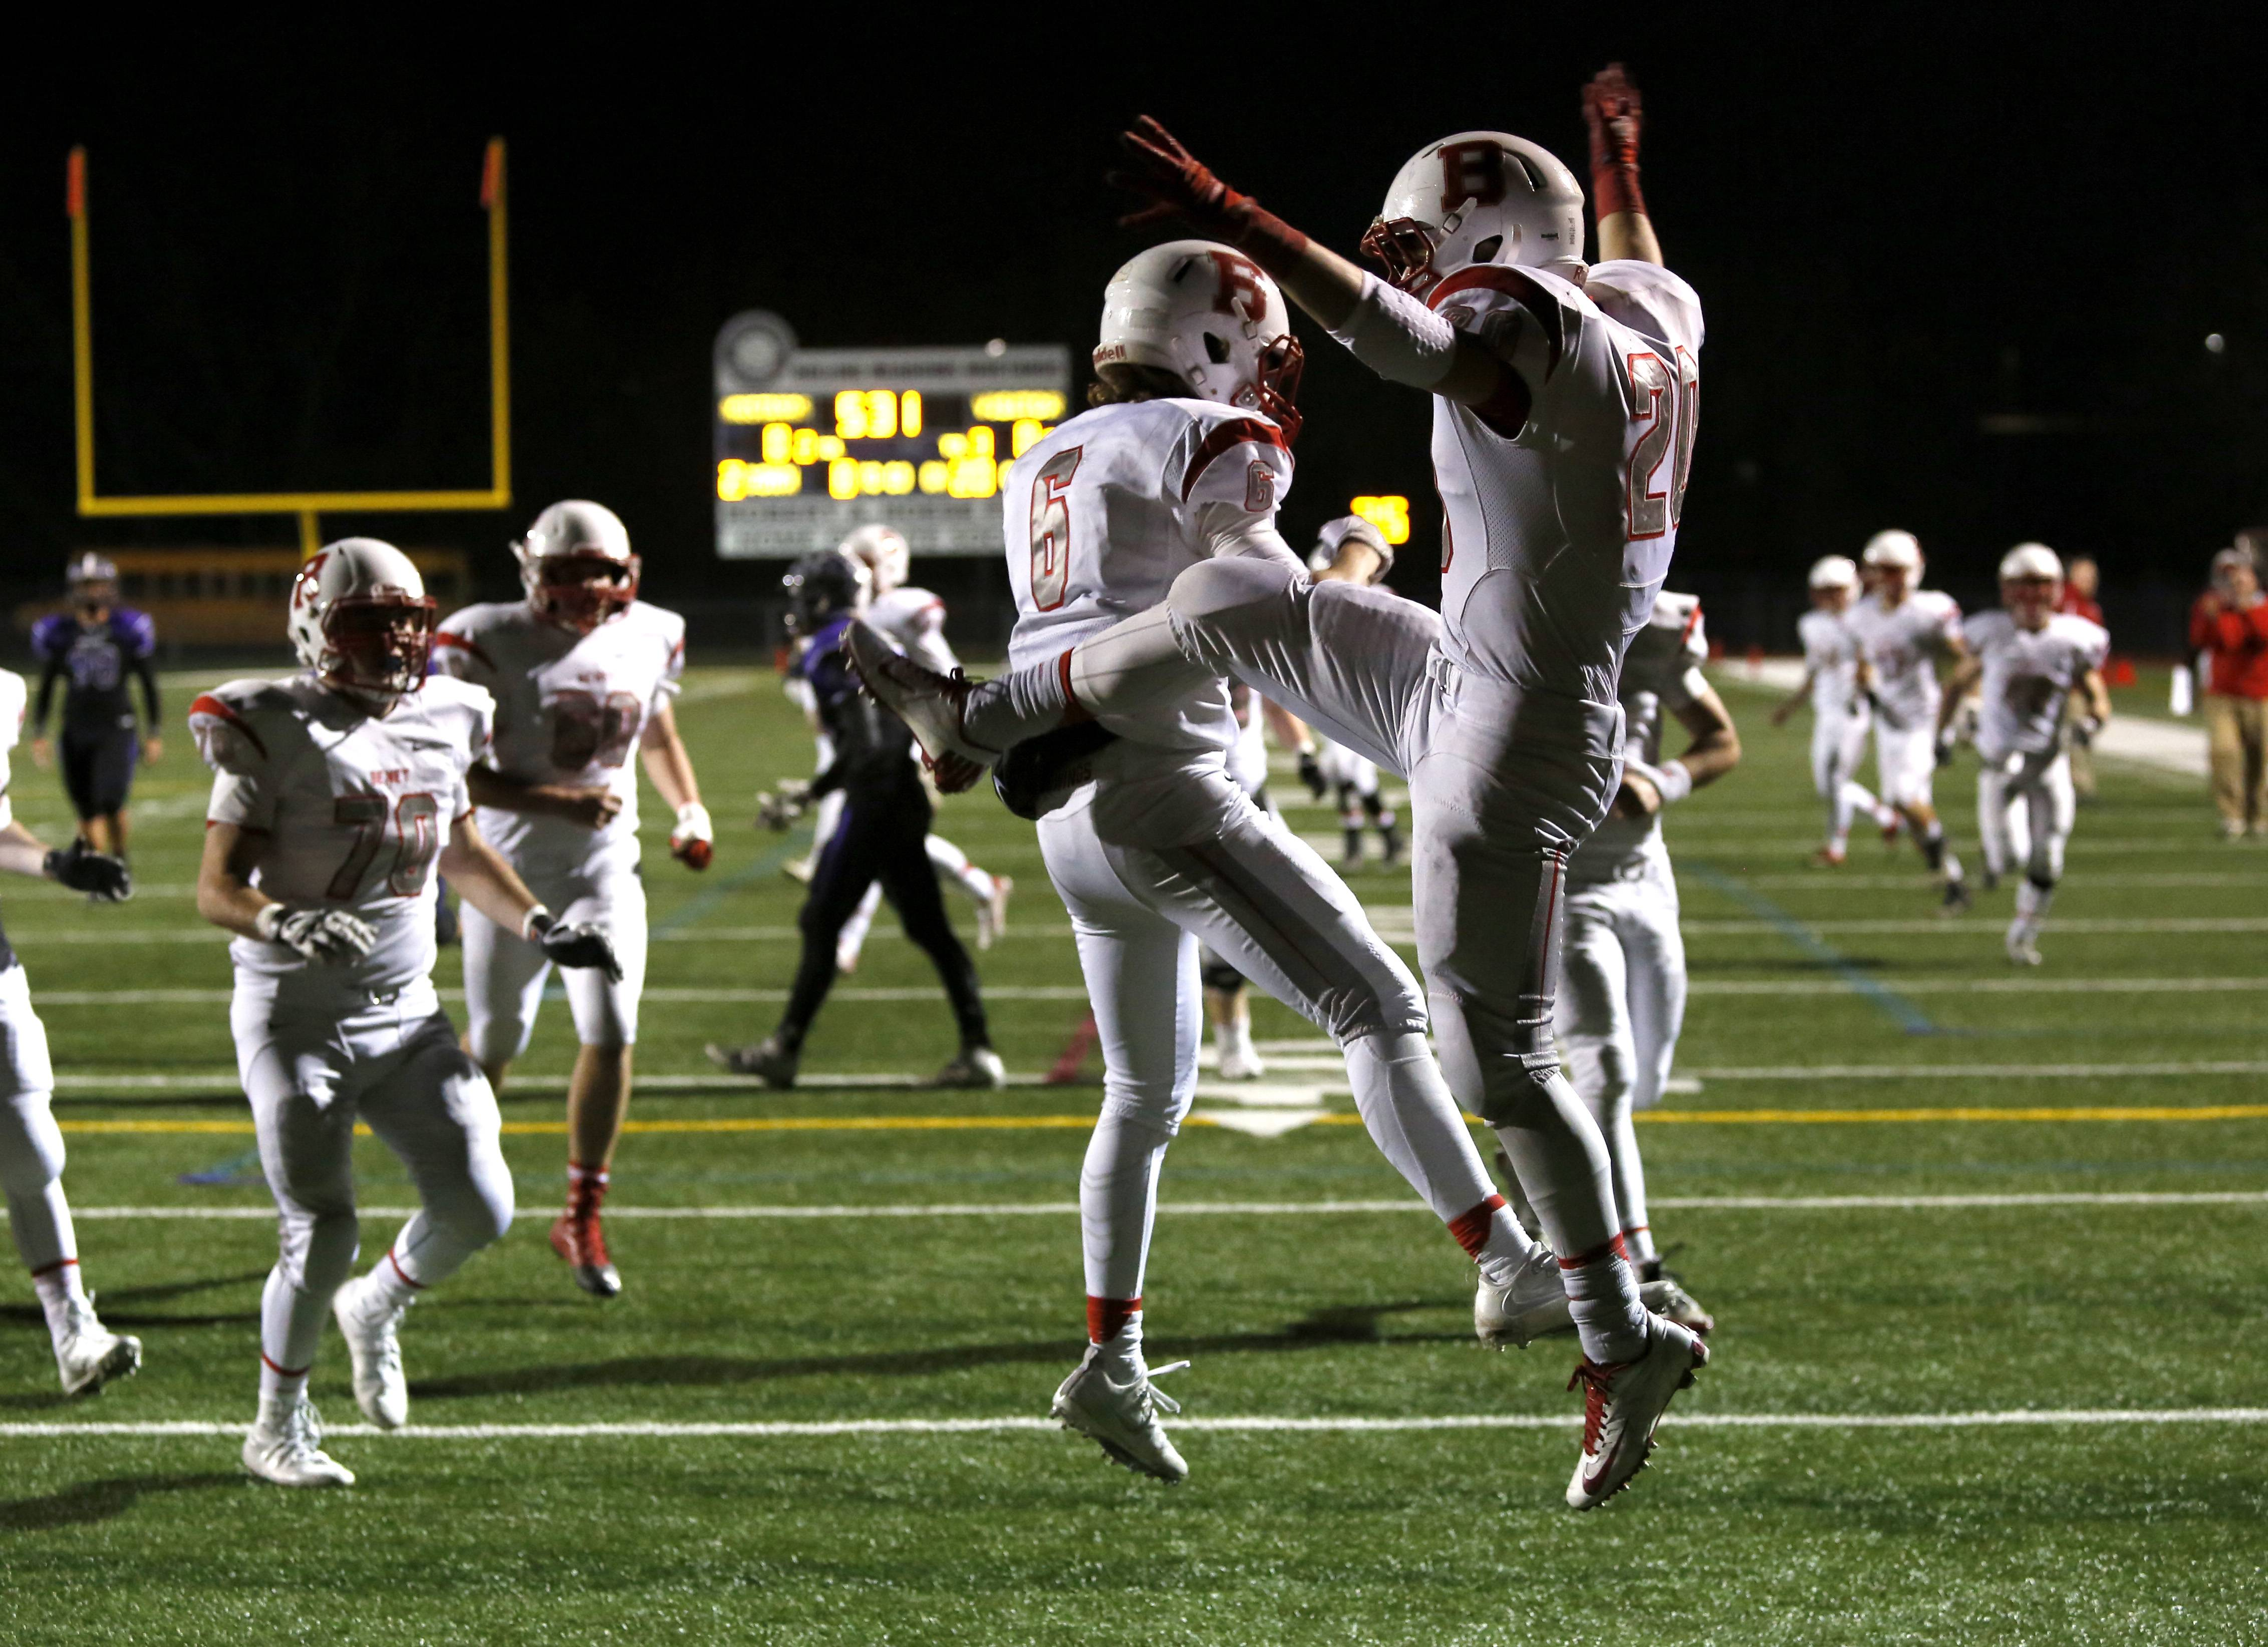 Images: Benet Academy vs. Rolling Meadows playoff football